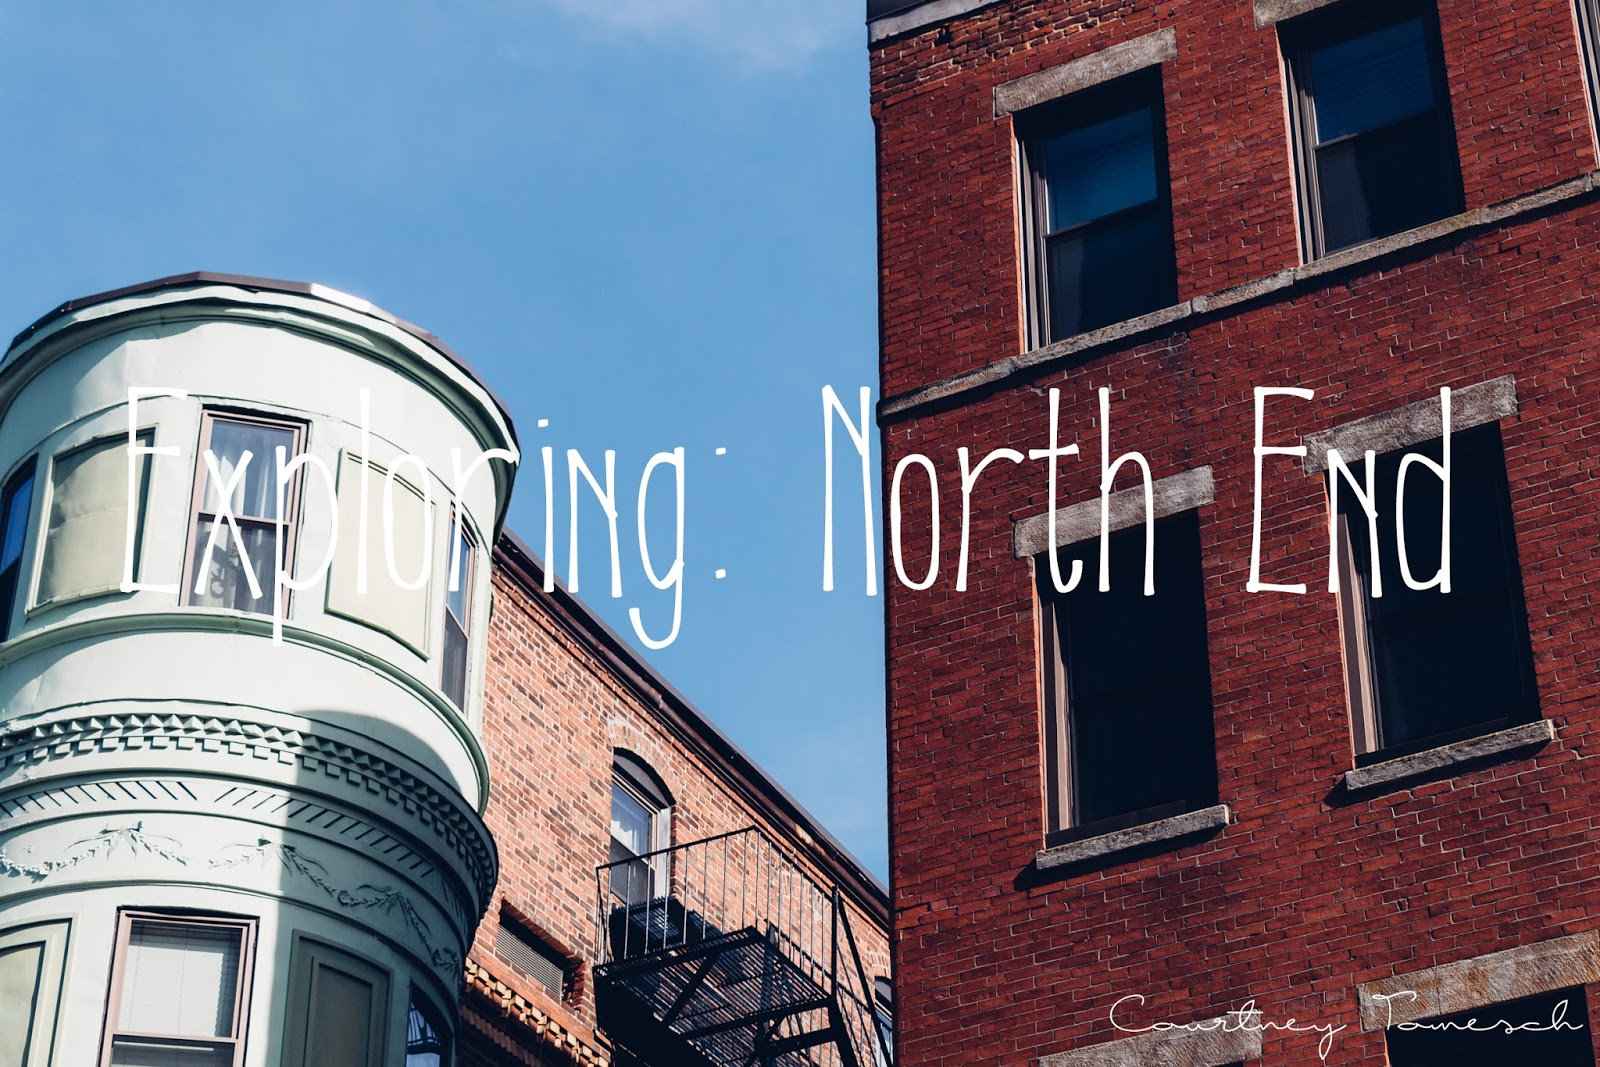 Courtney Tomesch Exploring: Boston North End